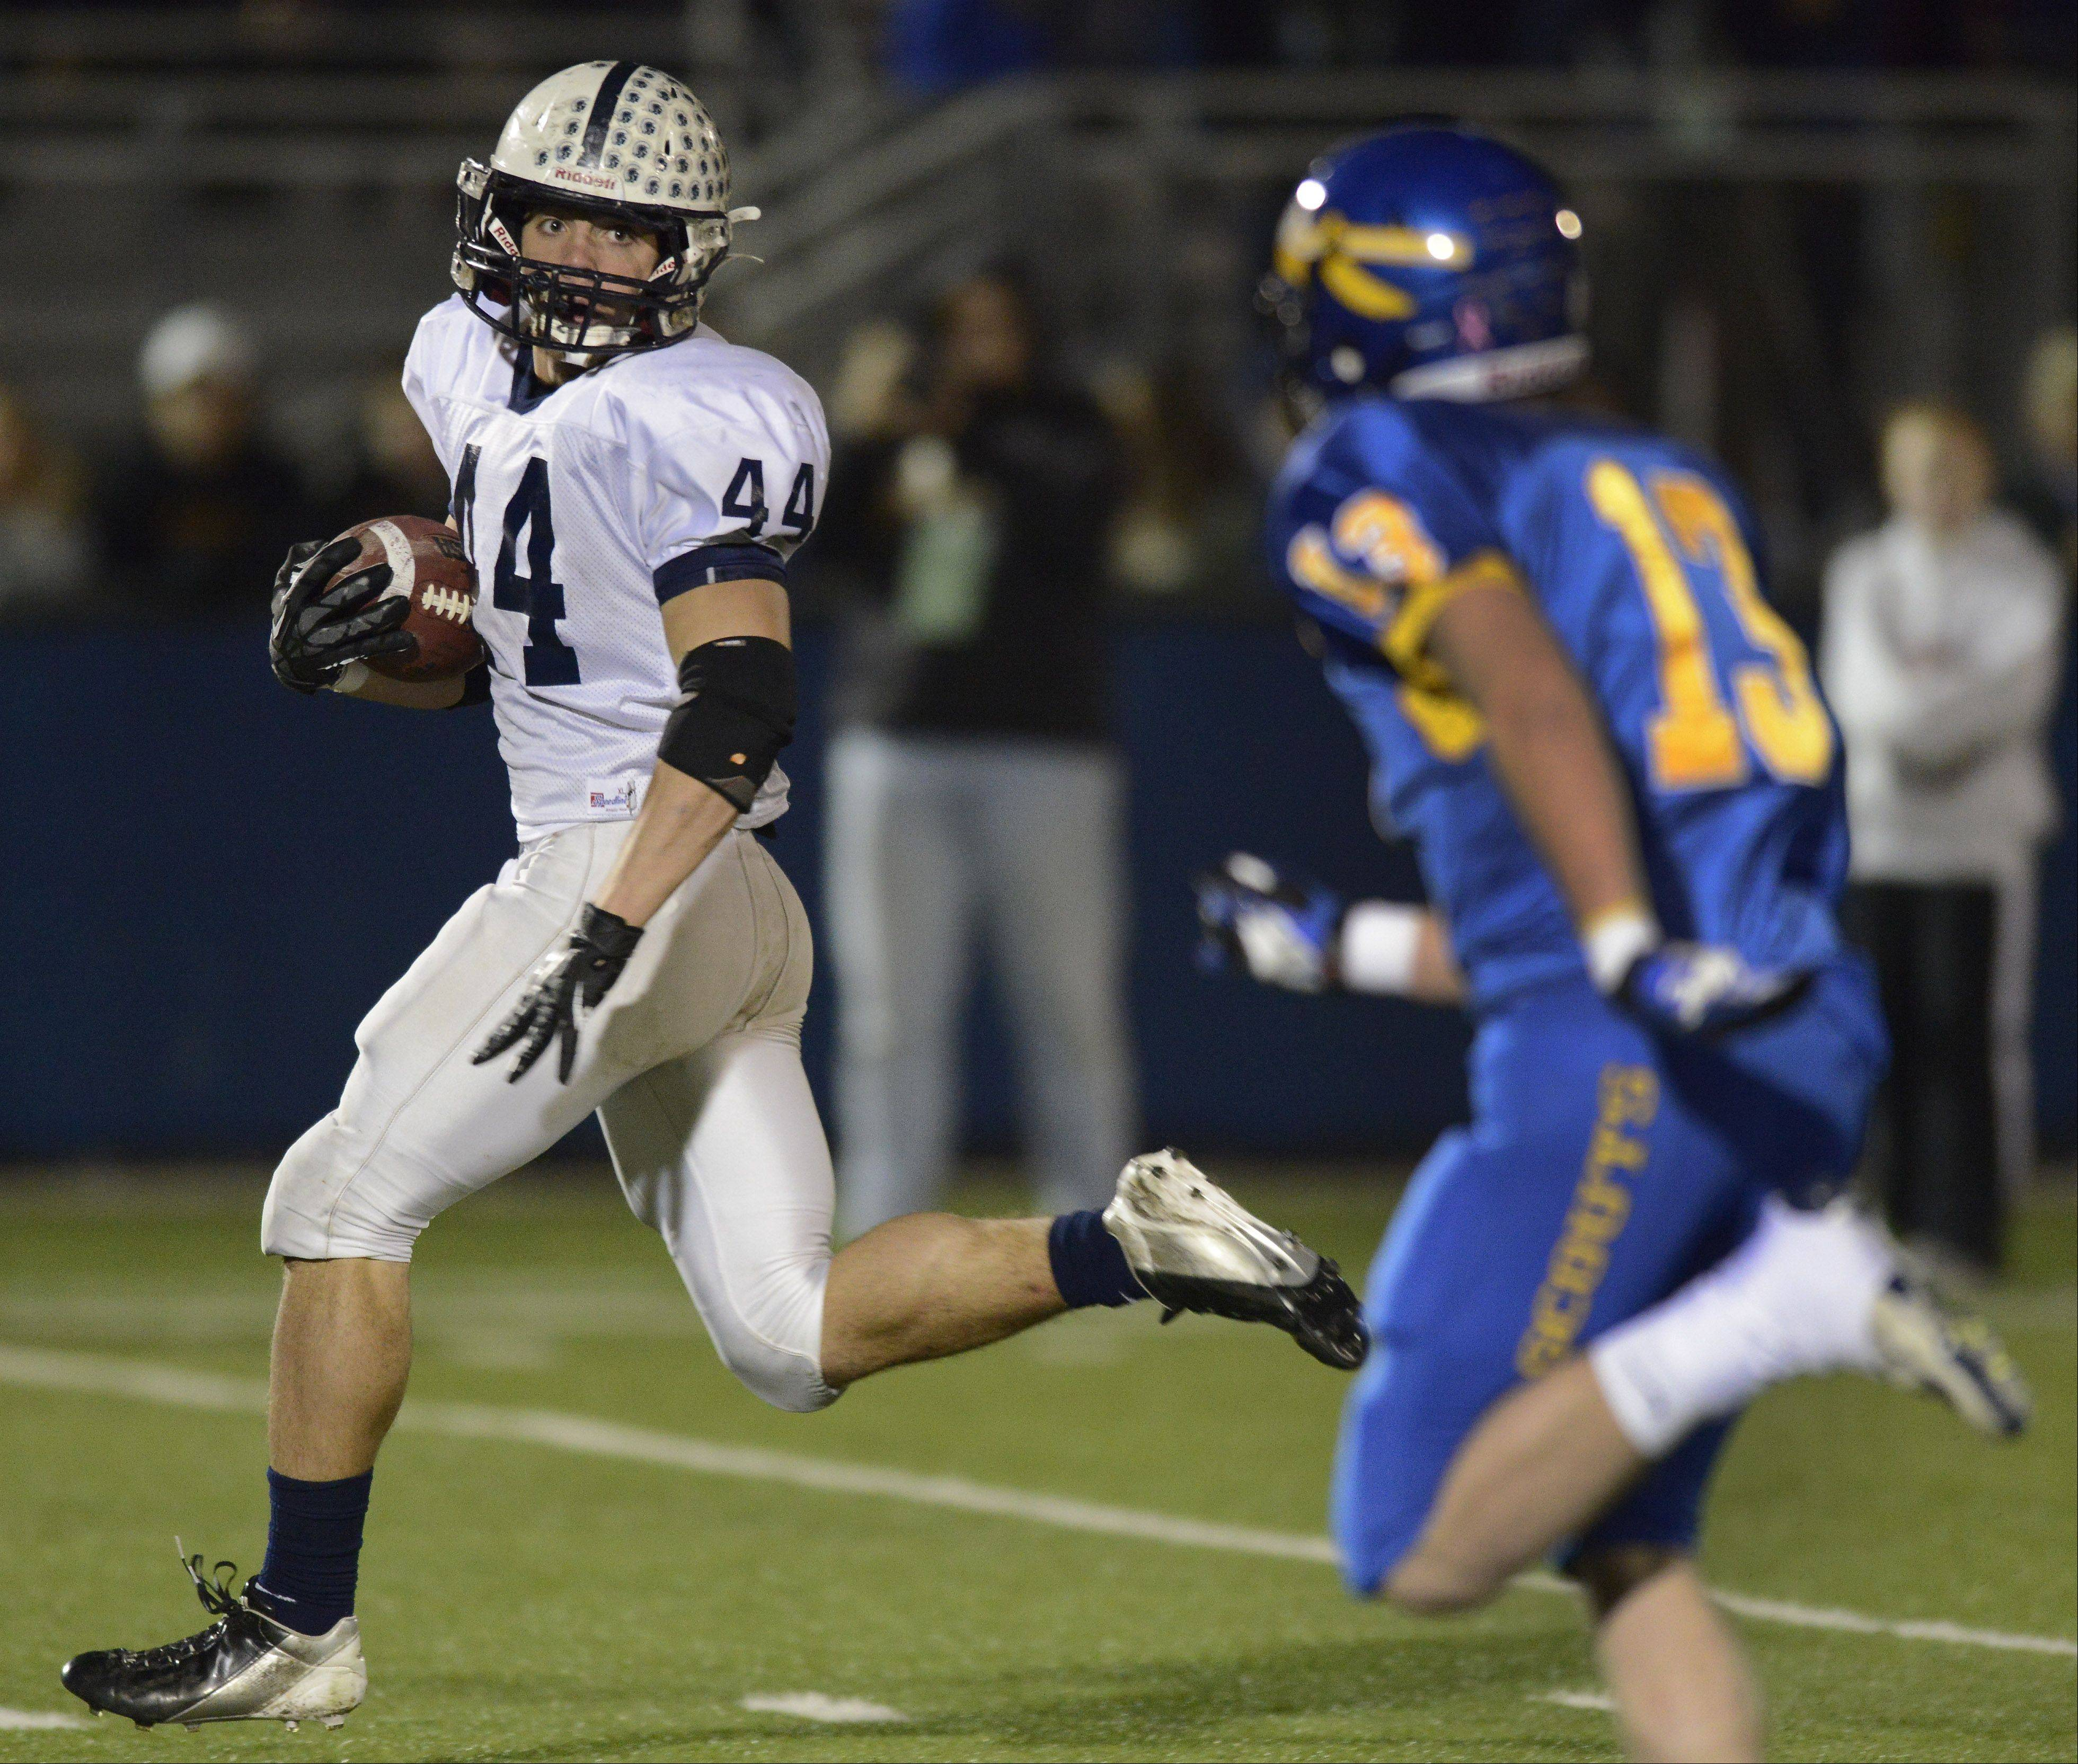 Kyle Norberg will help cary the load for Cary-Grove in the Class 6A championship game against Crete-Monee.